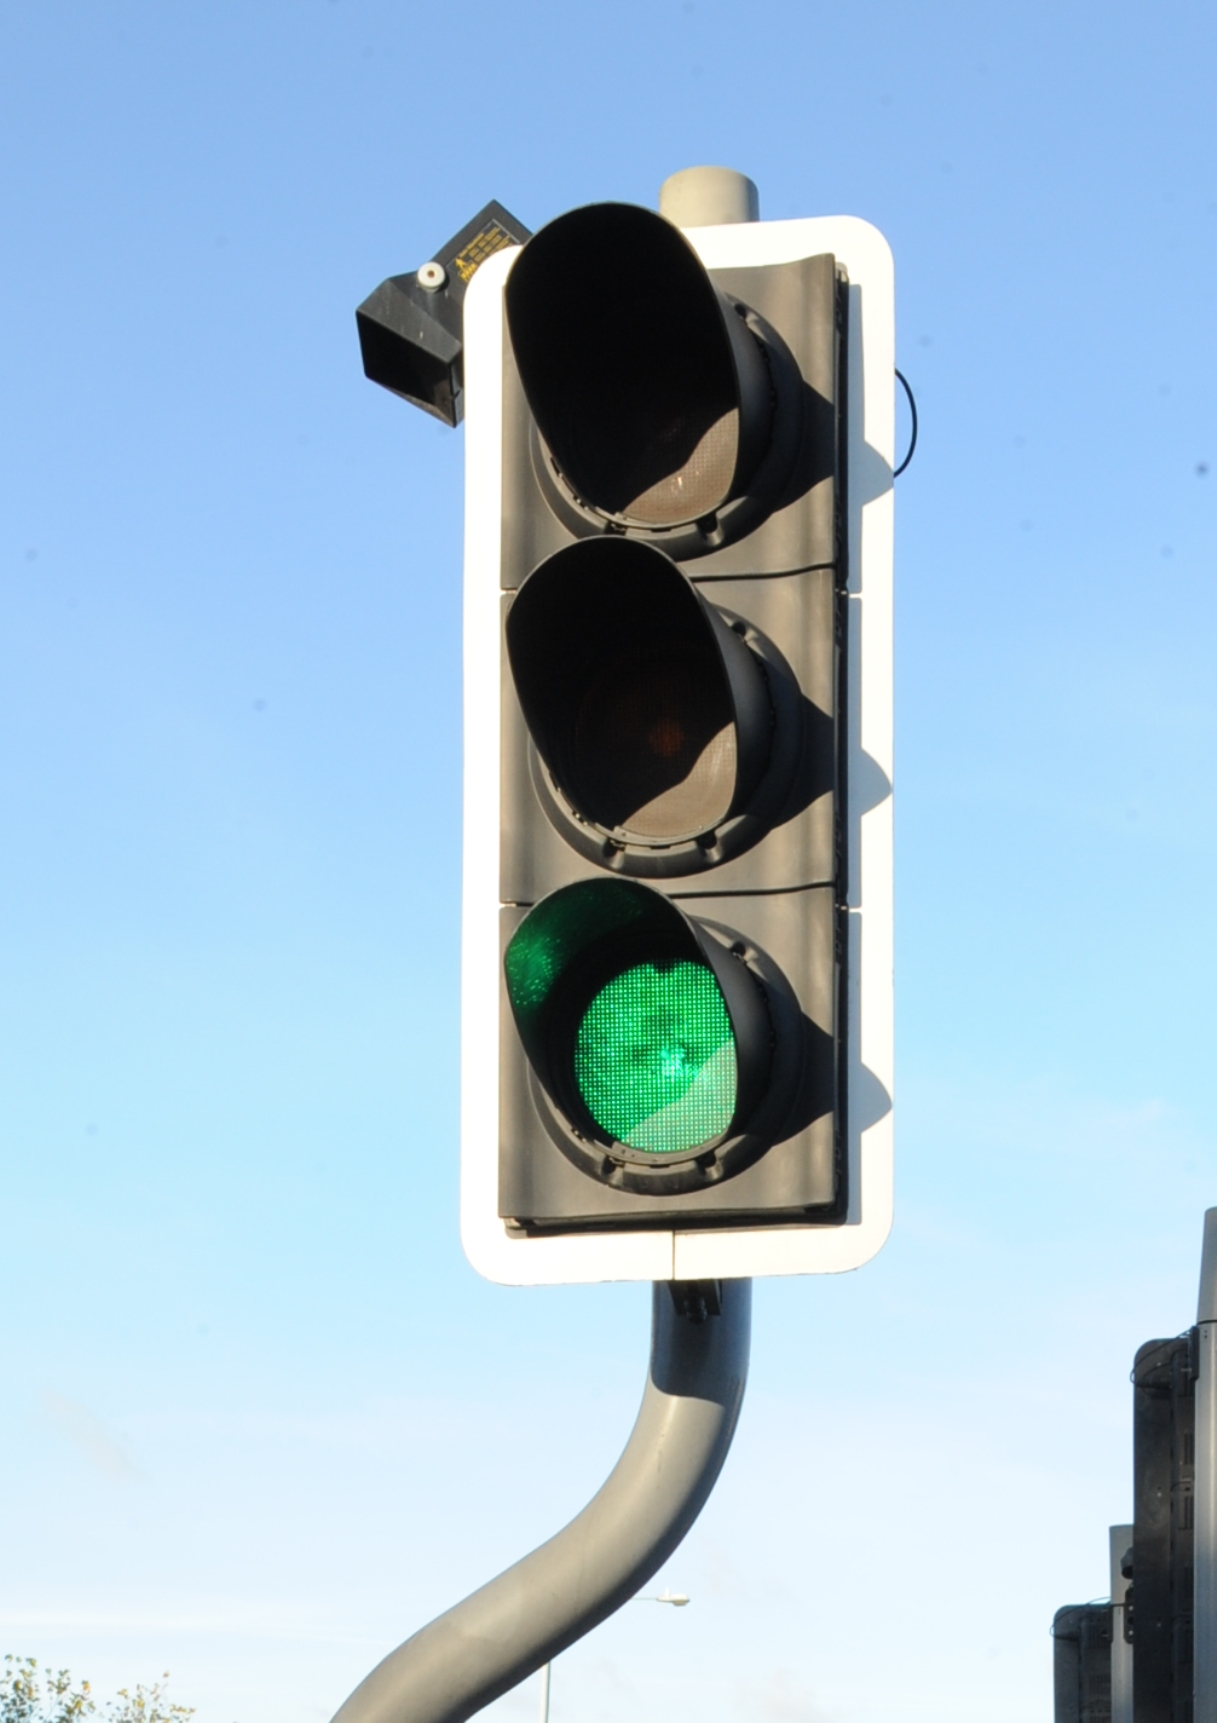 New traffic lights will be part of the scheme